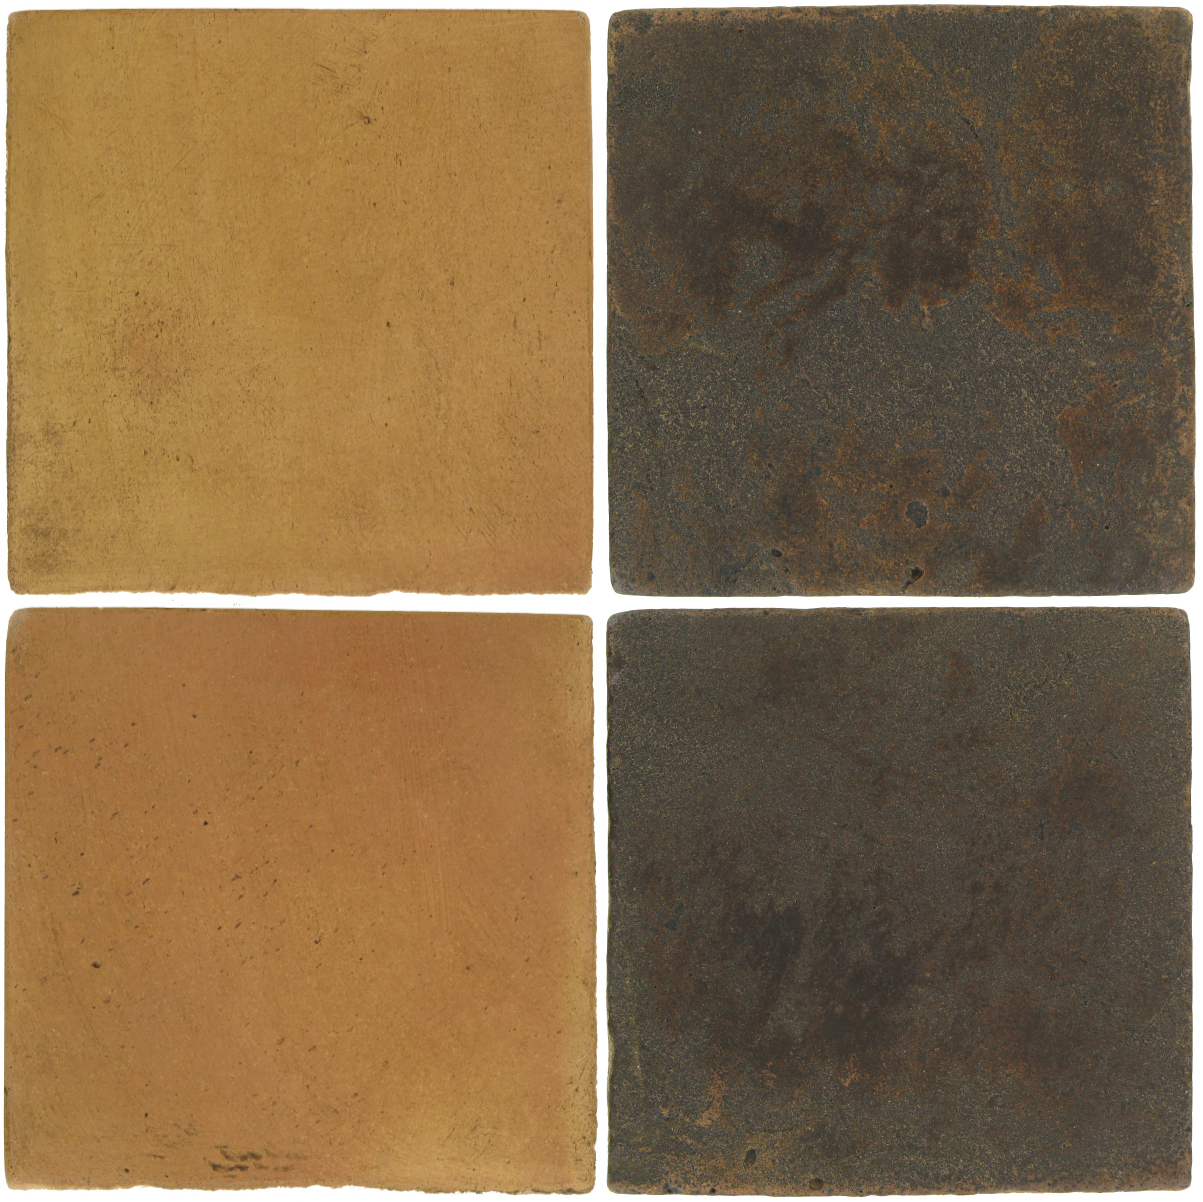 Pedralbes Antique Terracotta  2 Color Combinations  OHS-PSSW Siena Wheat + VTG-PSCO Cologne Brown